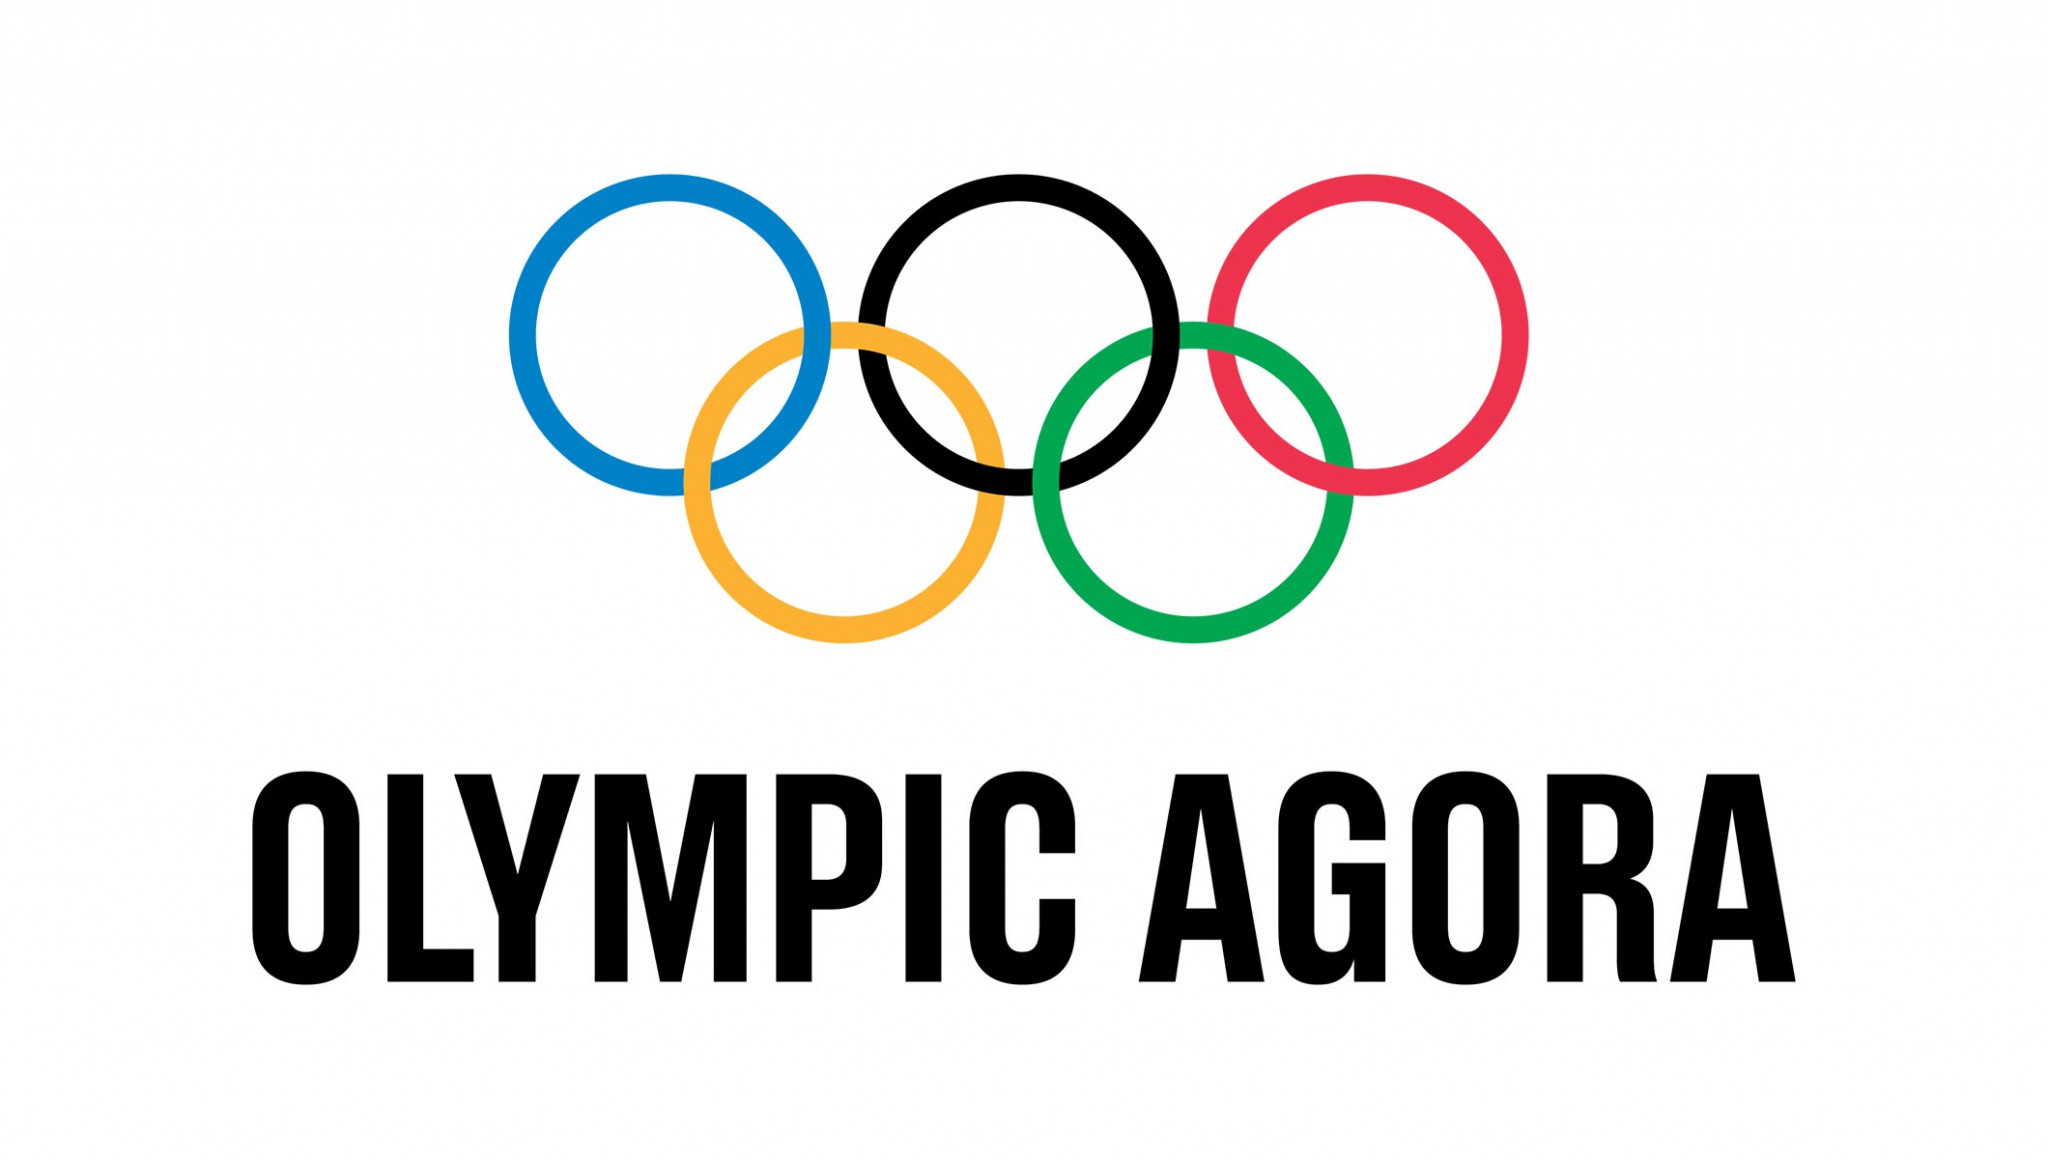 First Olympic Agora to be held in Tokyo